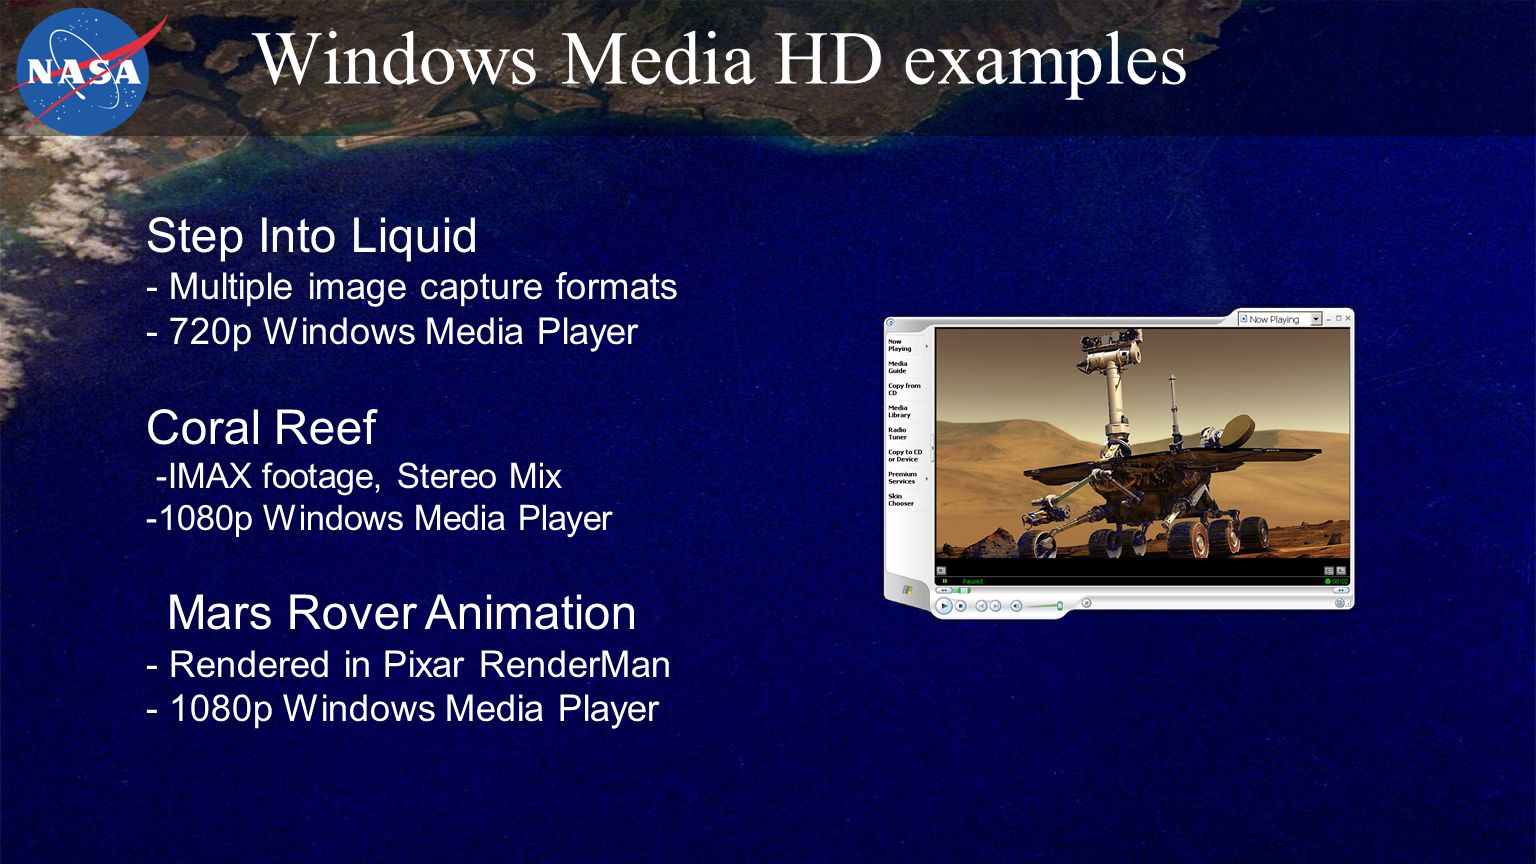 Windows Media HD examples Step Into Liquid - Multiple image capture formats - 720p Windows Media Player Coral Reef -IMAX footage, Stereo Mix -1080p Windows Media Player Mars Rover Animation - Rendered in Pixar RenderMan p Windows Media Player